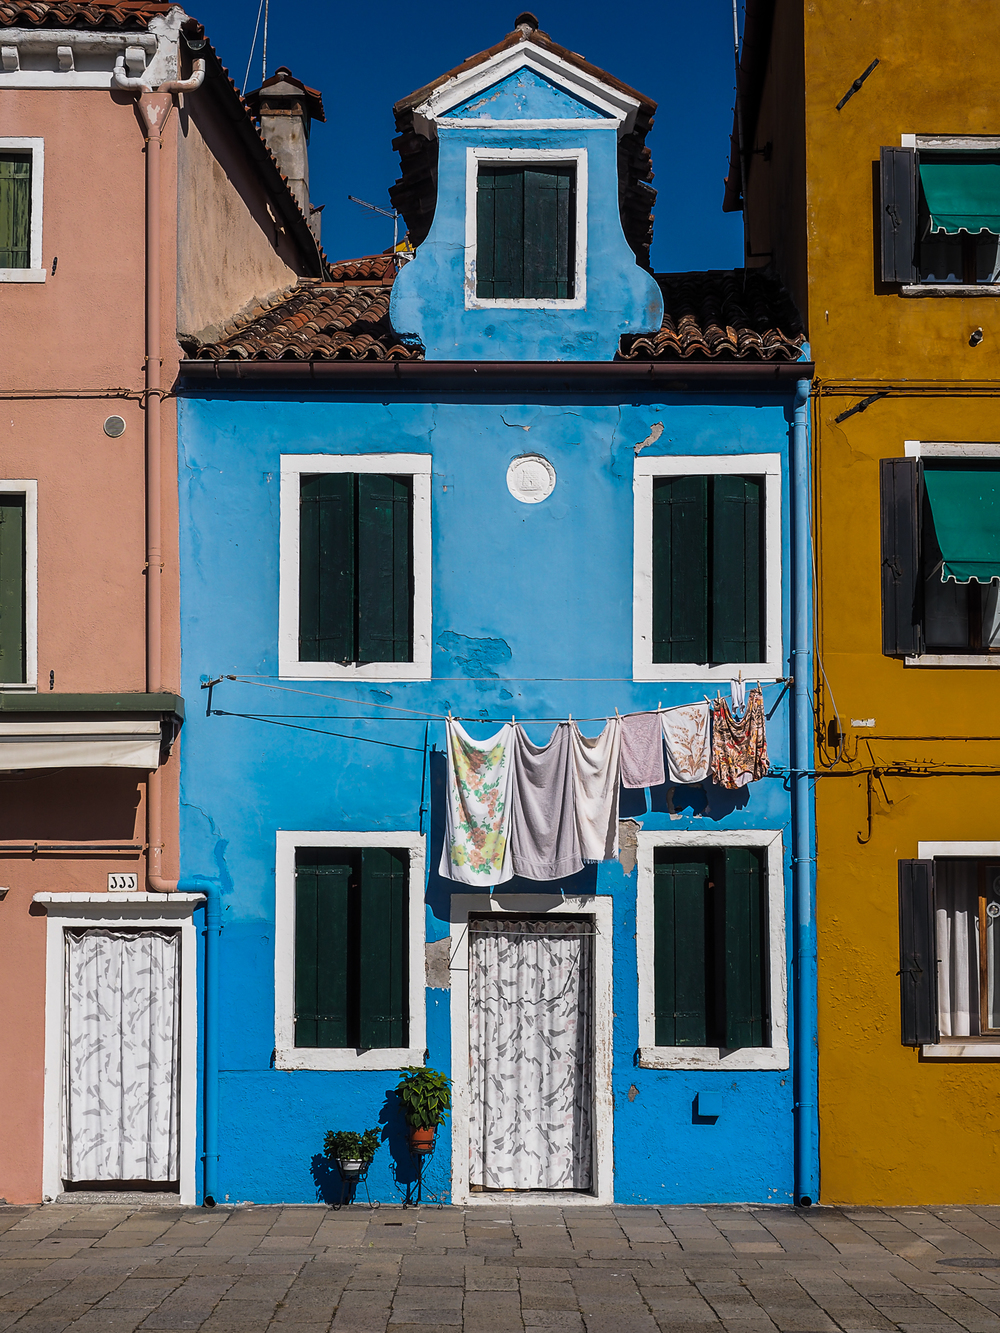 Blue Burano, by Lewis Cadkin. All rights reserved.